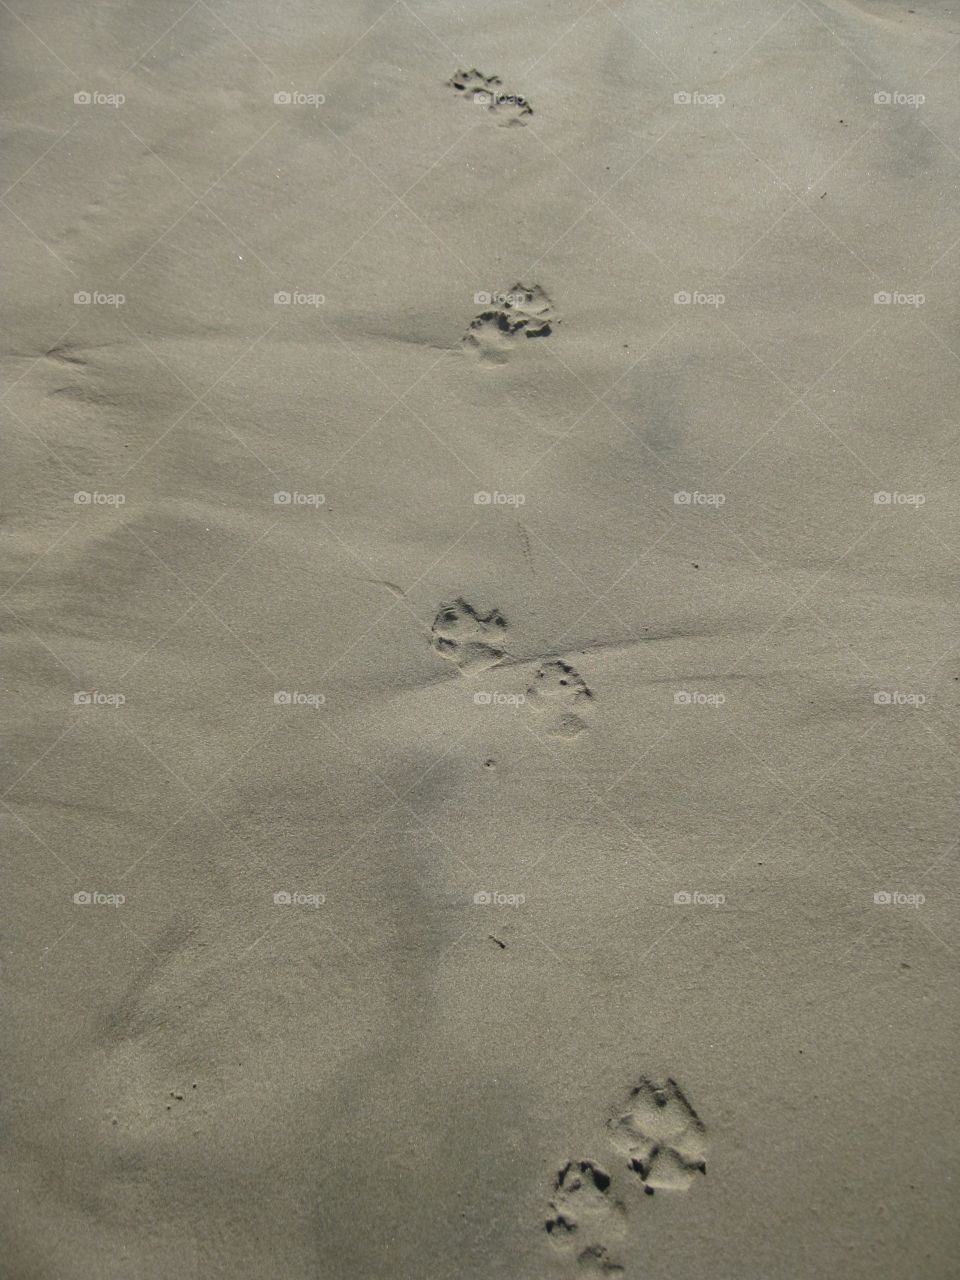 Paw prints in the sand. Nicaragua beach. Following paw prints